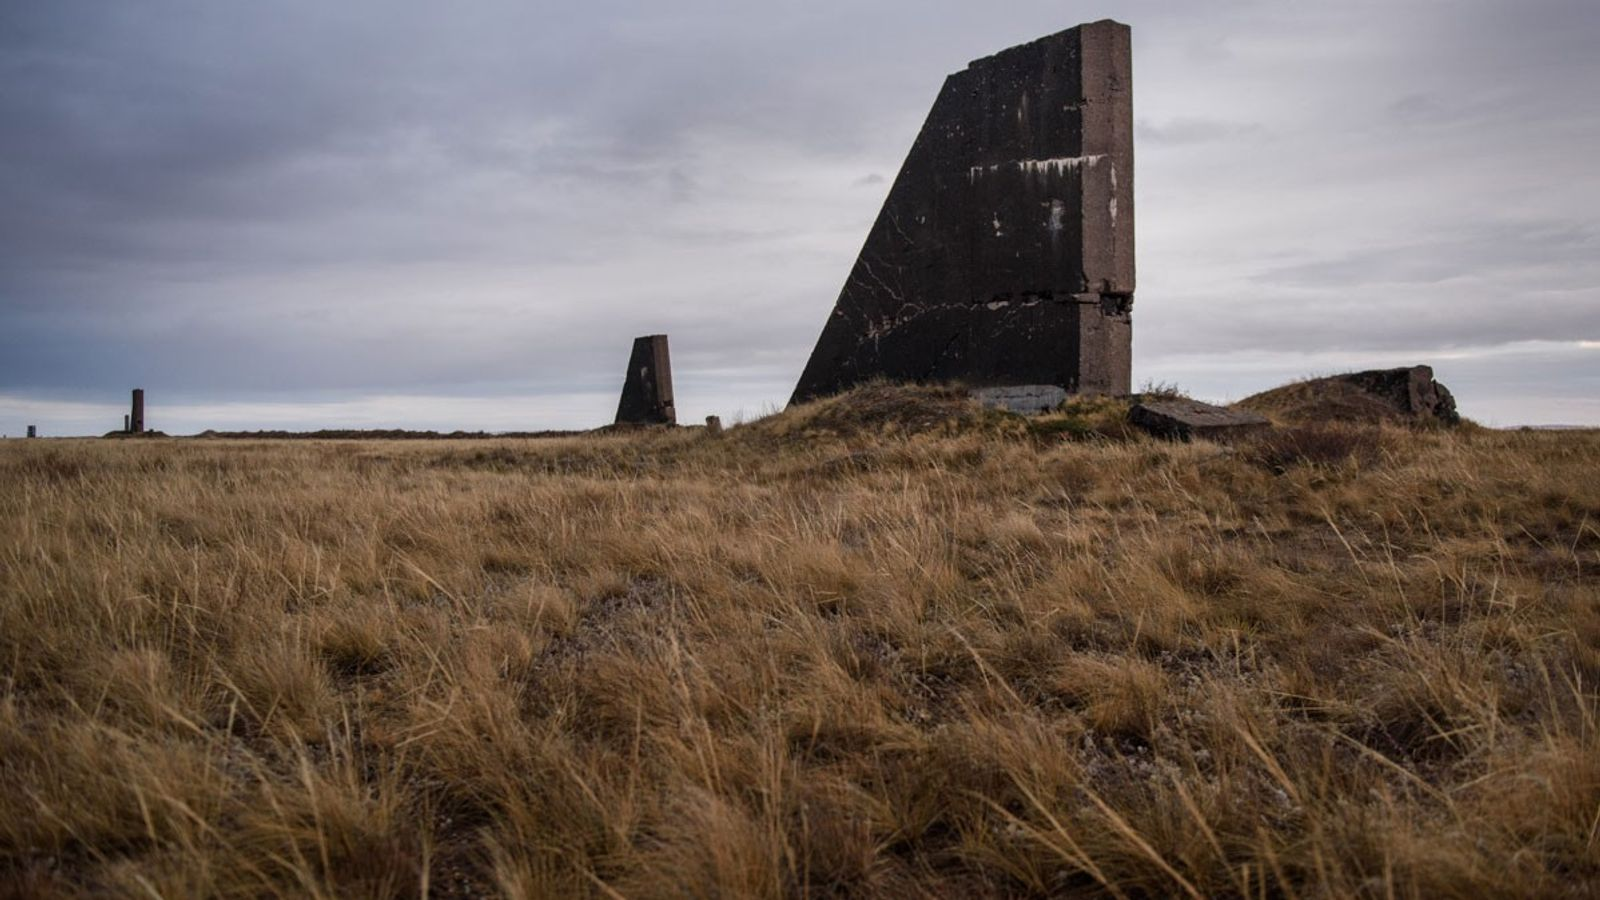 Concrete structures are pictured approximately 650 feet away from the site of the first Soviet nuclear ...